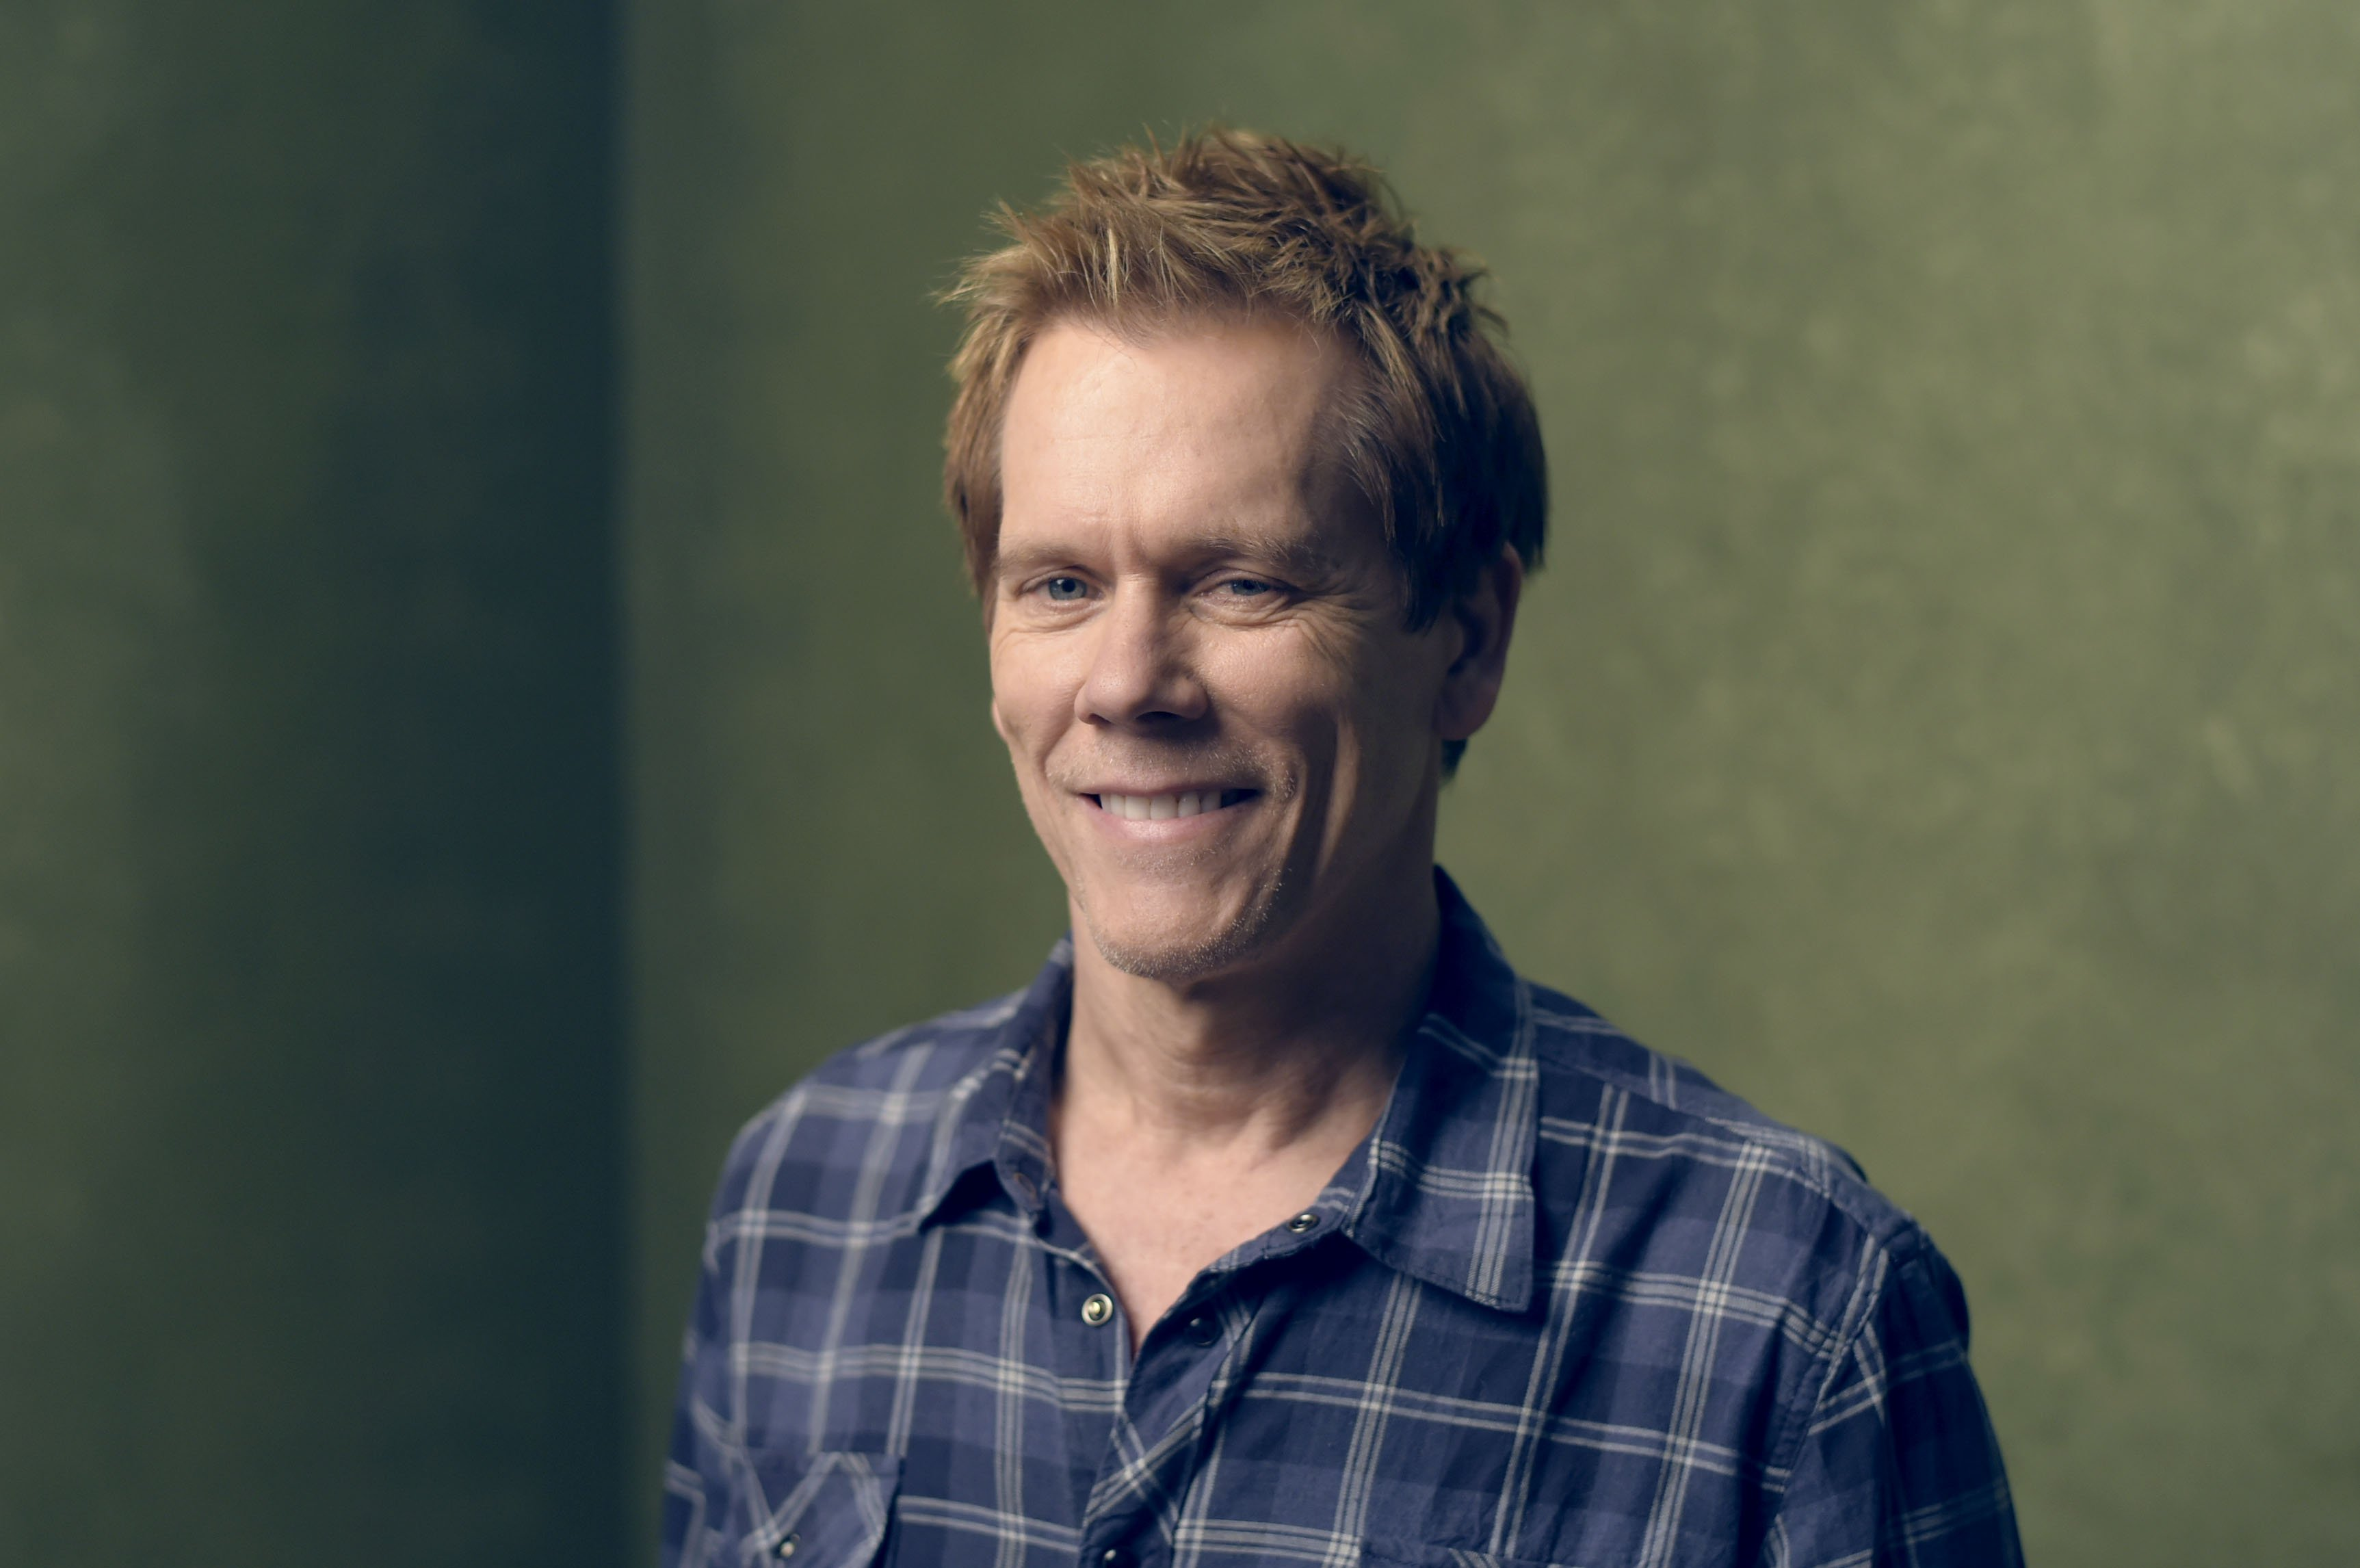 """Kevin Bacon from """"Cop Car"""" poses for a portrait at the Village at the Lift Presented by McDonald's McCafe during the 2015 Sundance Film Festival on January 24, 2015 in Park City, Utah 